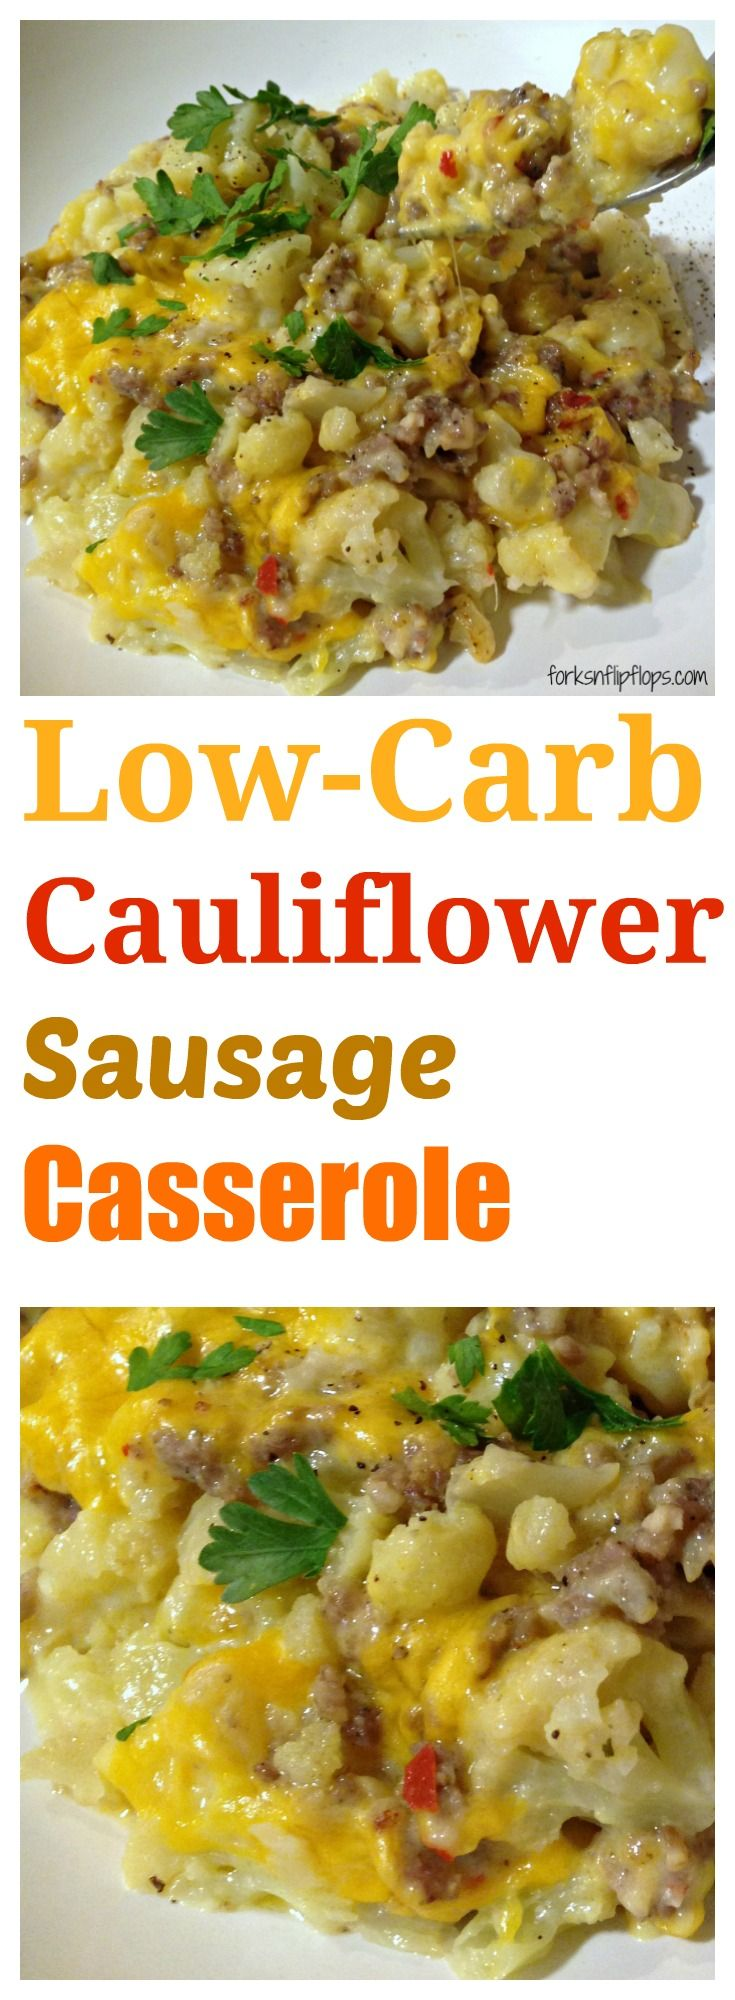 Low Carb Cauliflower Sausage Casserole  This is a cheesy low carb dinner recipe that will be a family favorite.